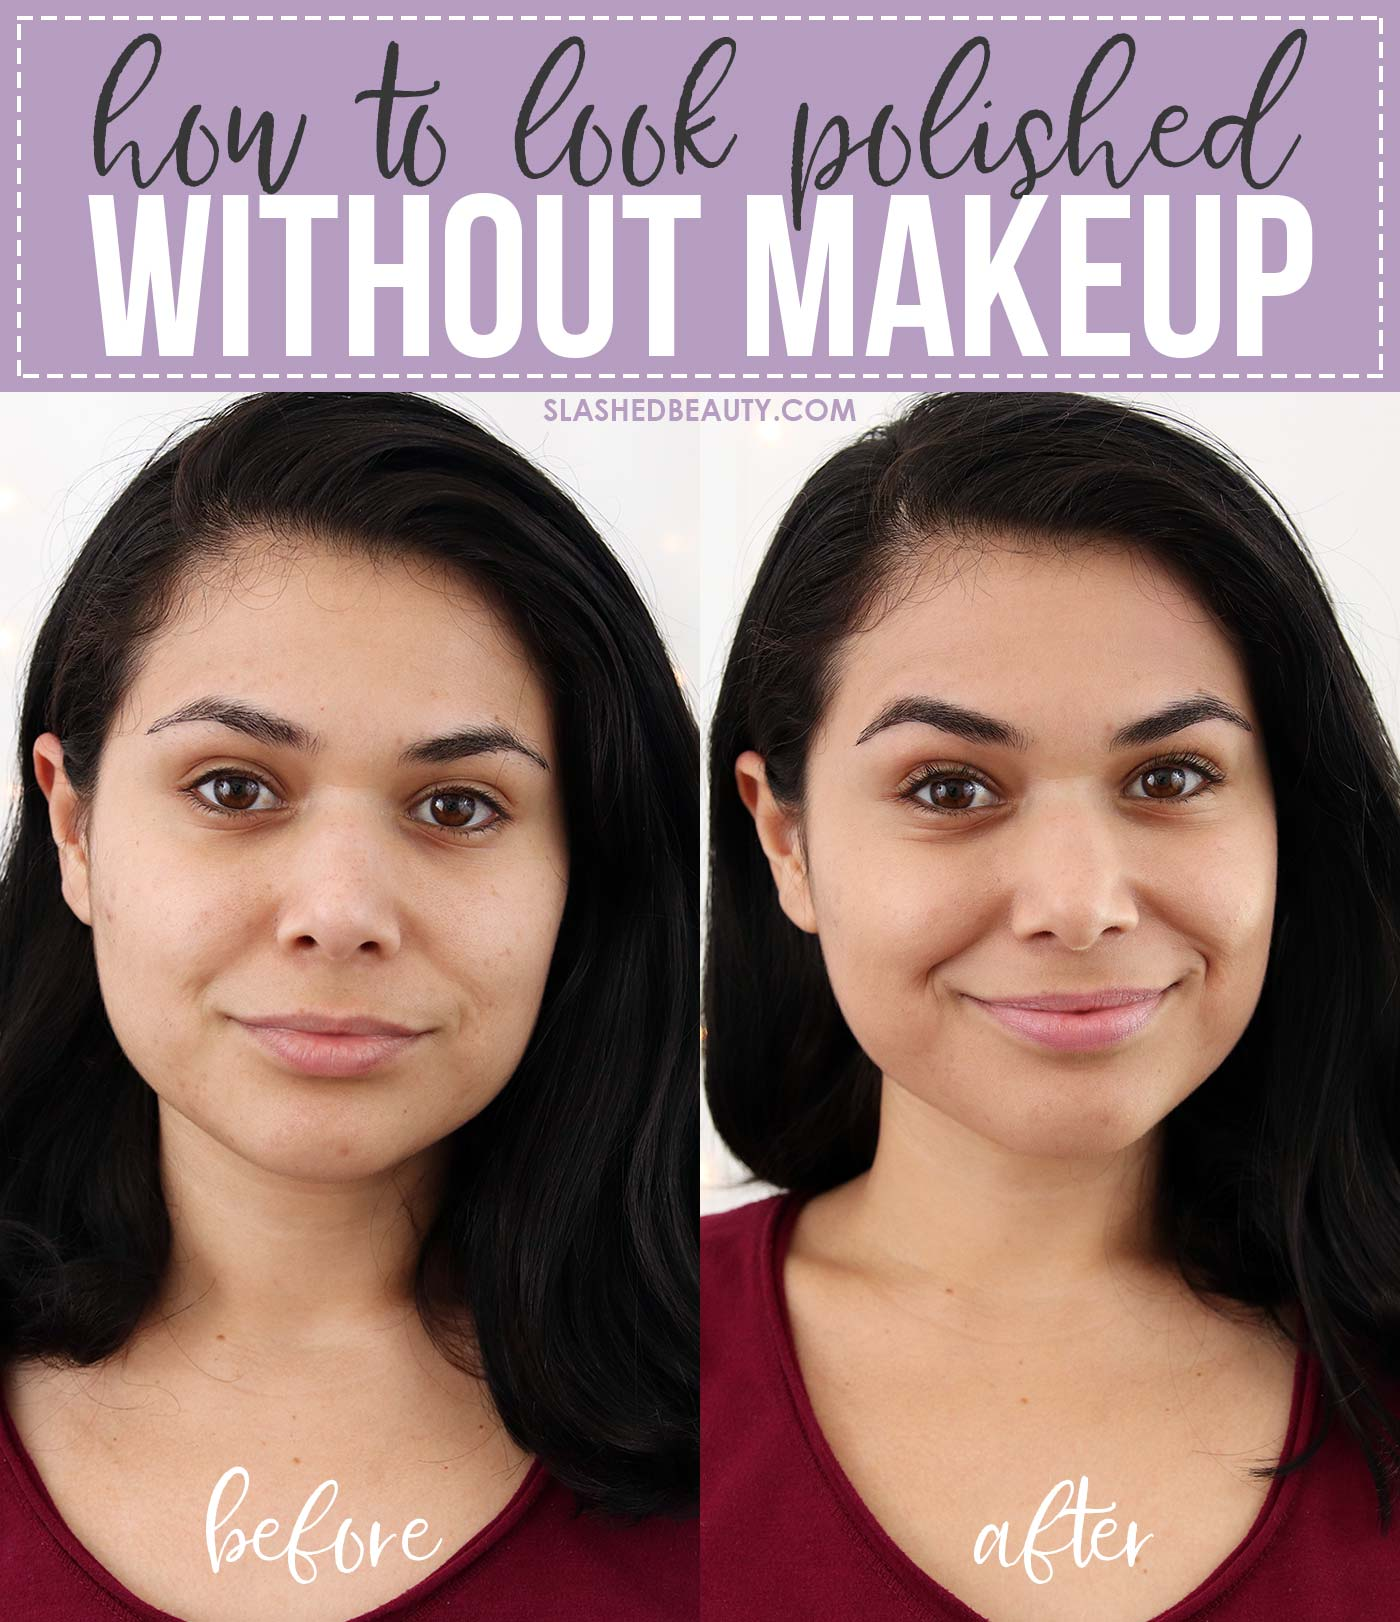 How to Look Polished Without Makeup | Slashed Beauty